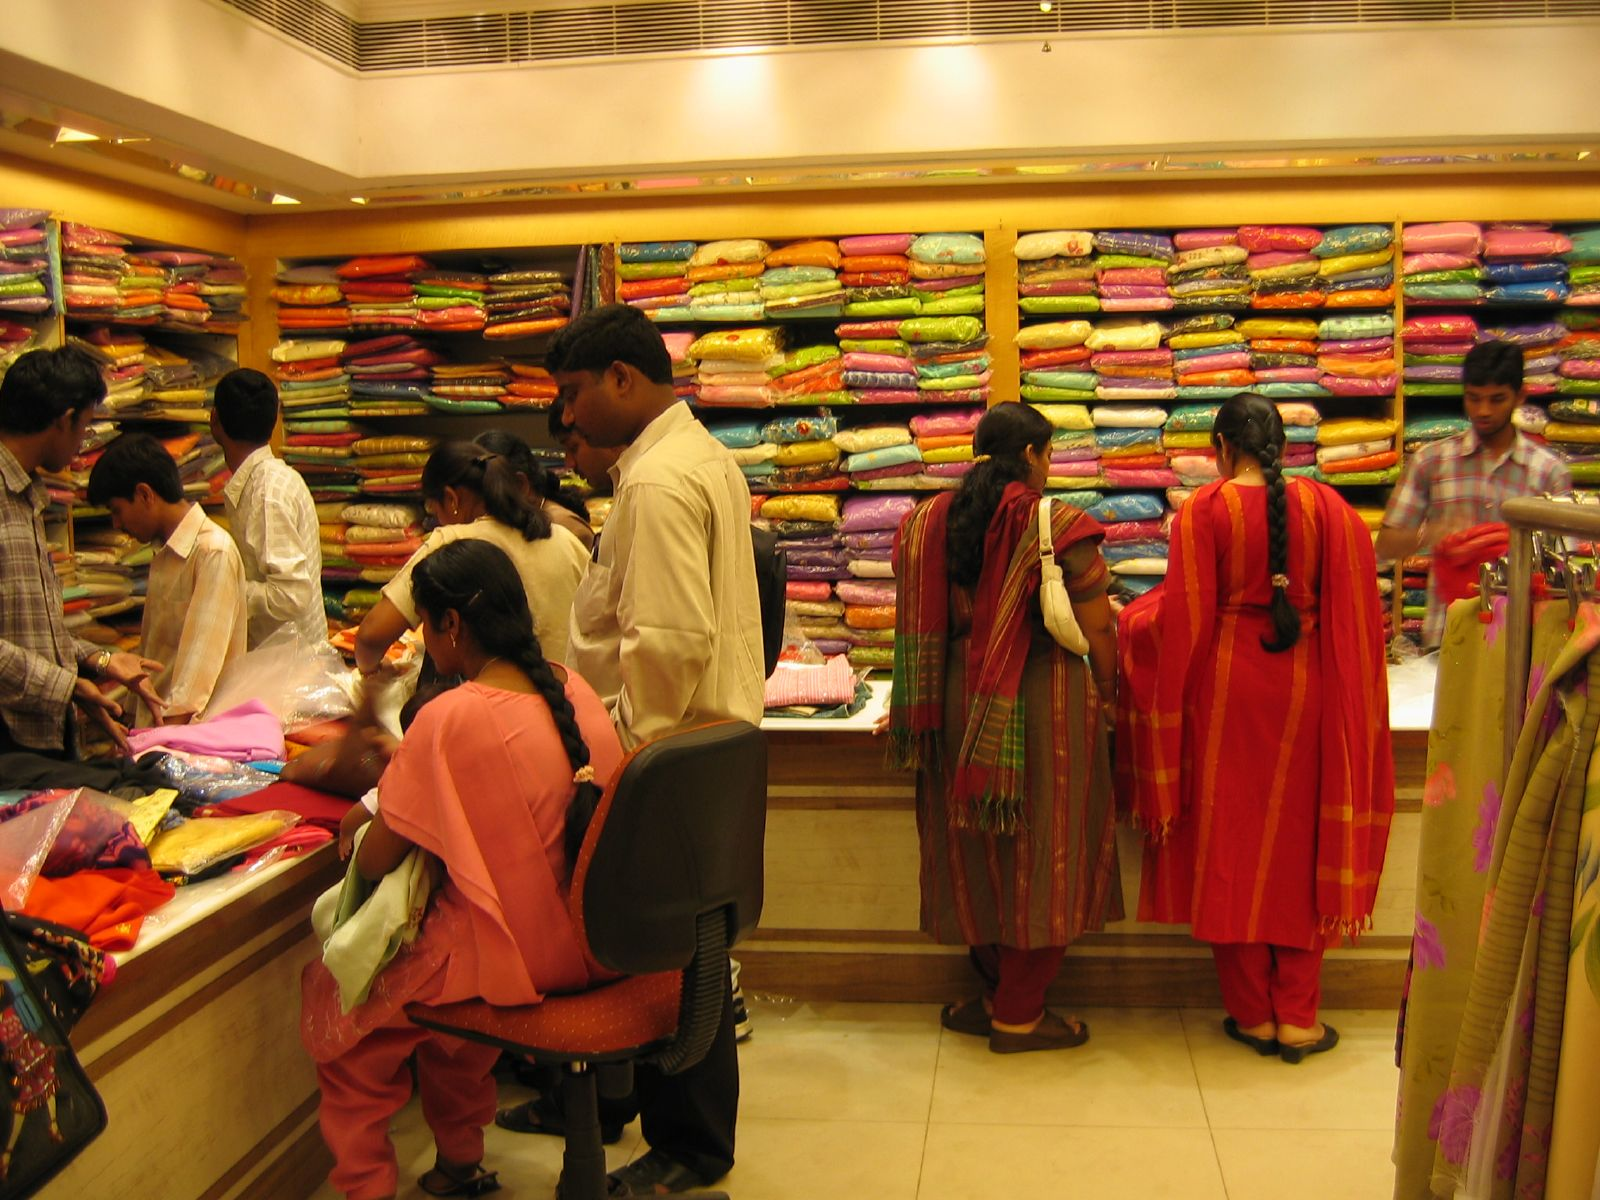 Clothes shop interior design in india